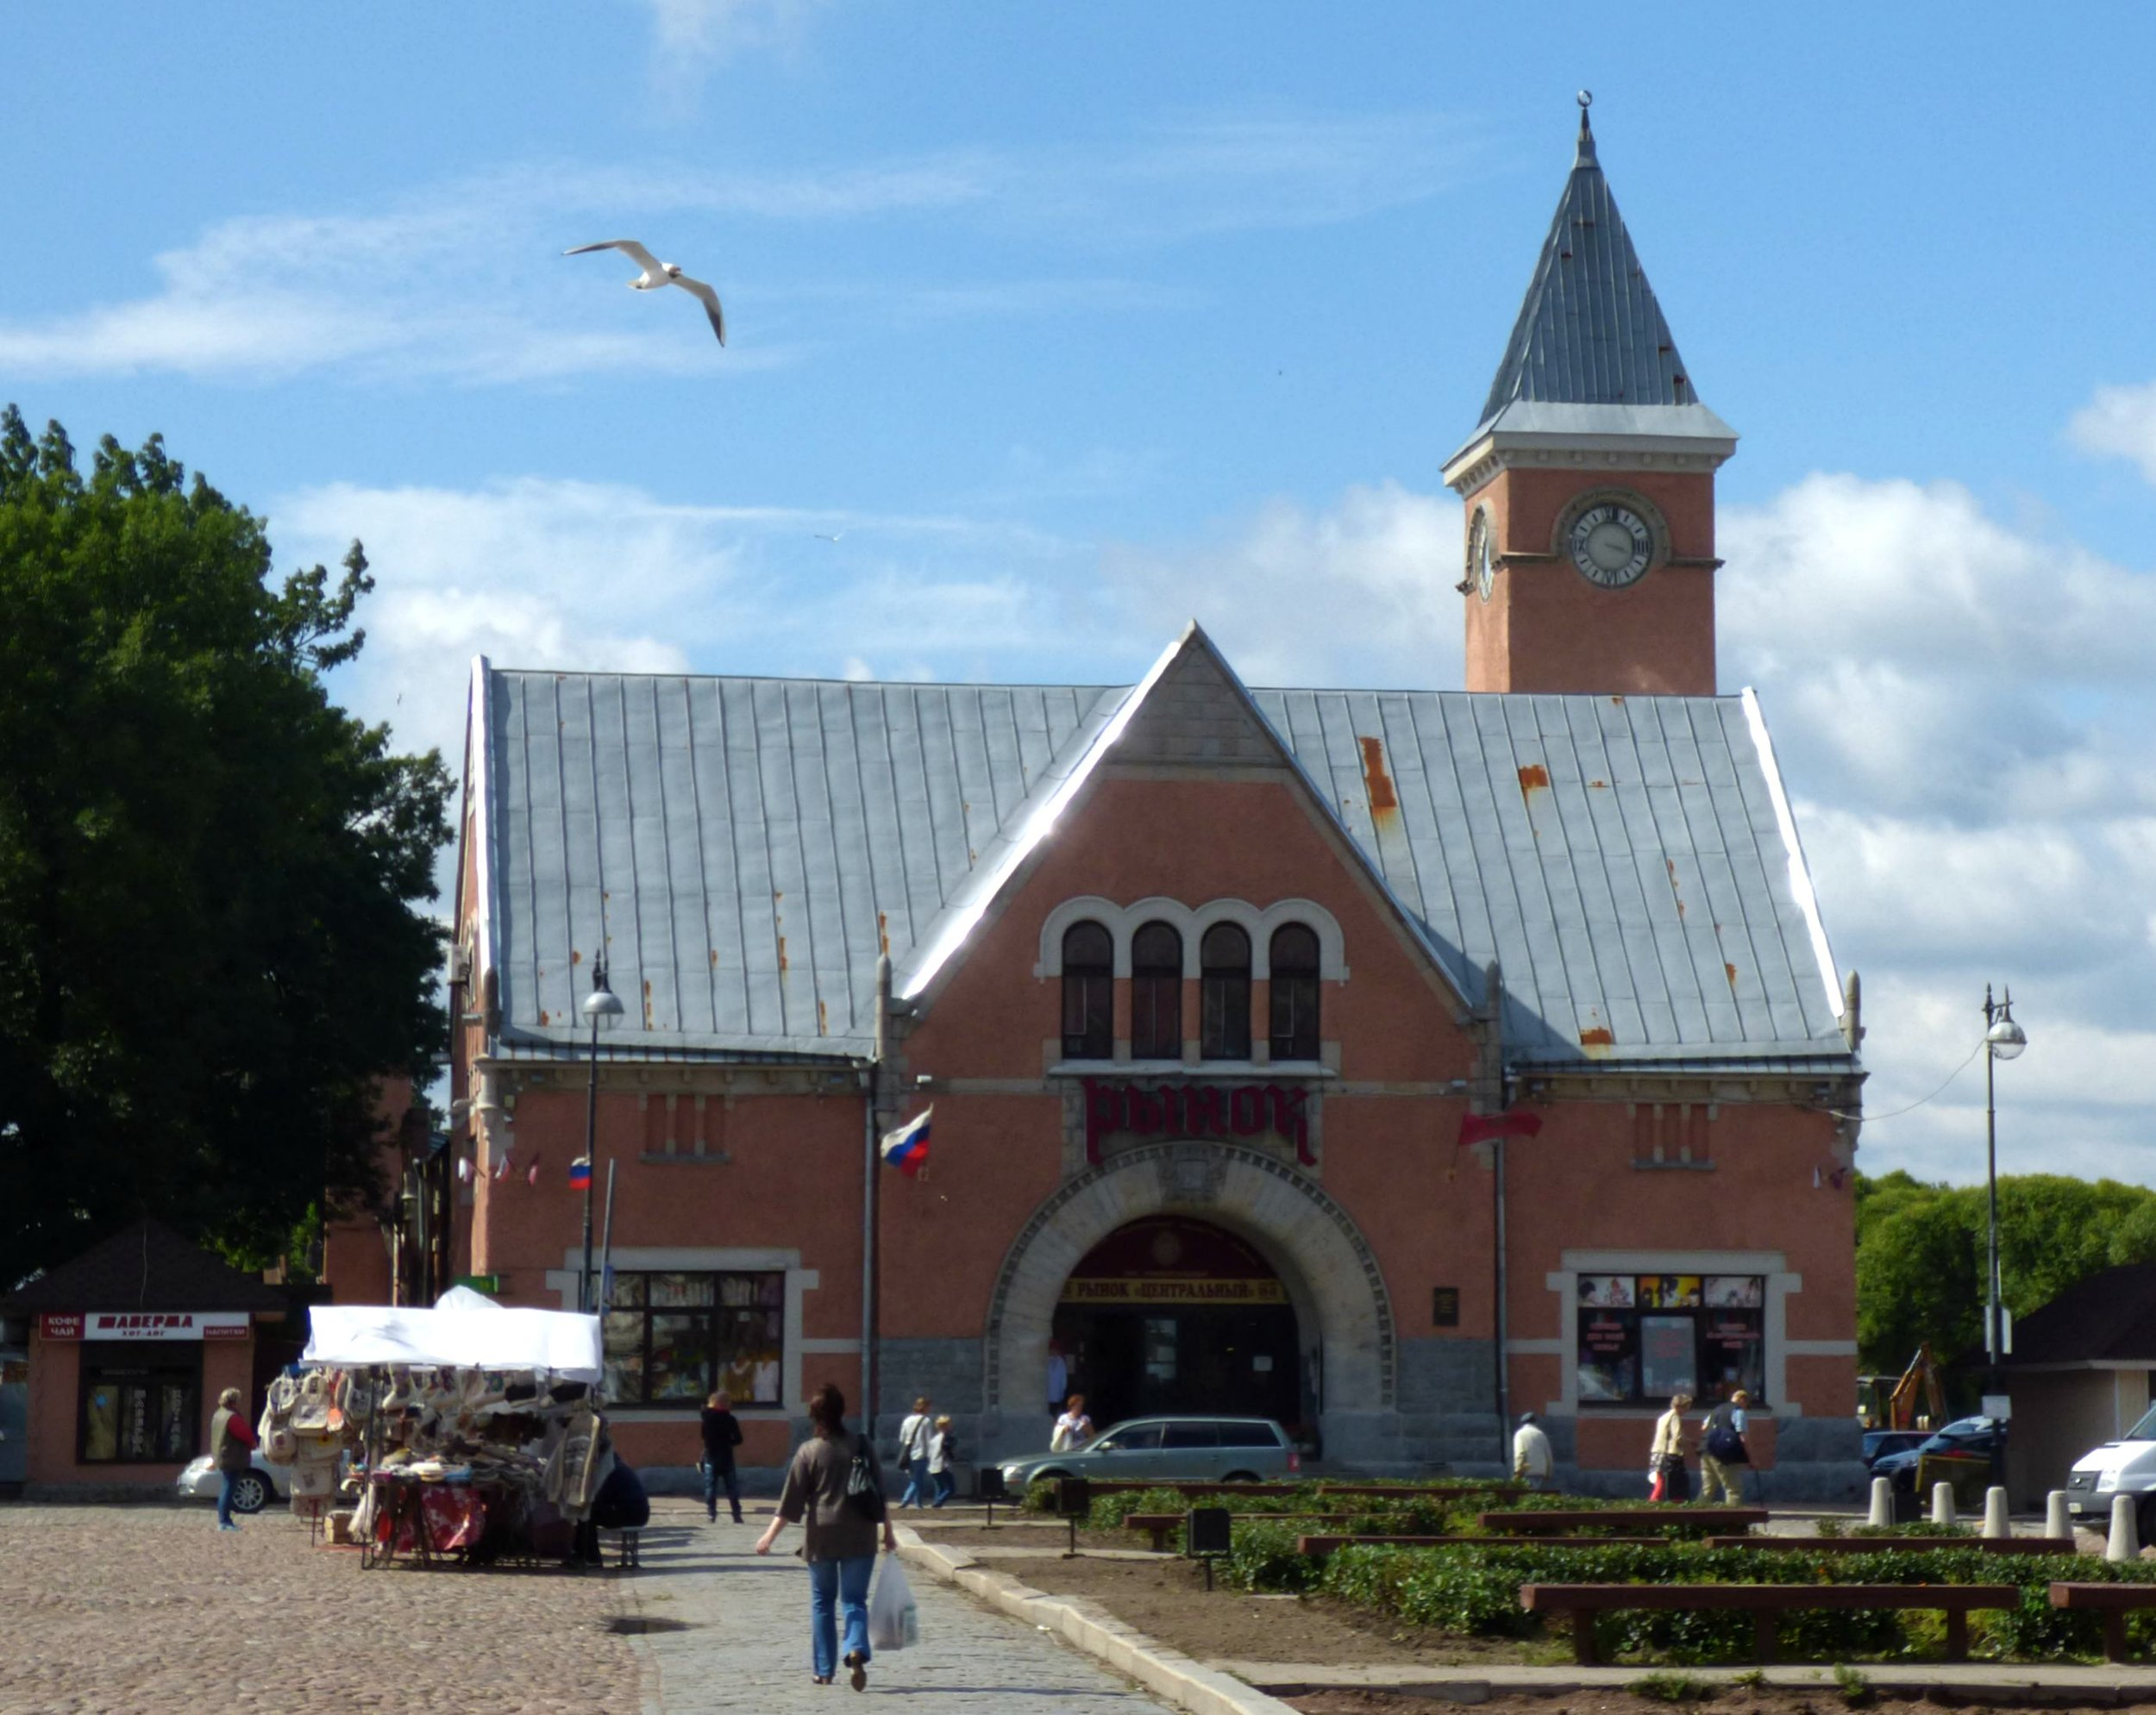 The Market Hall of Vyborg